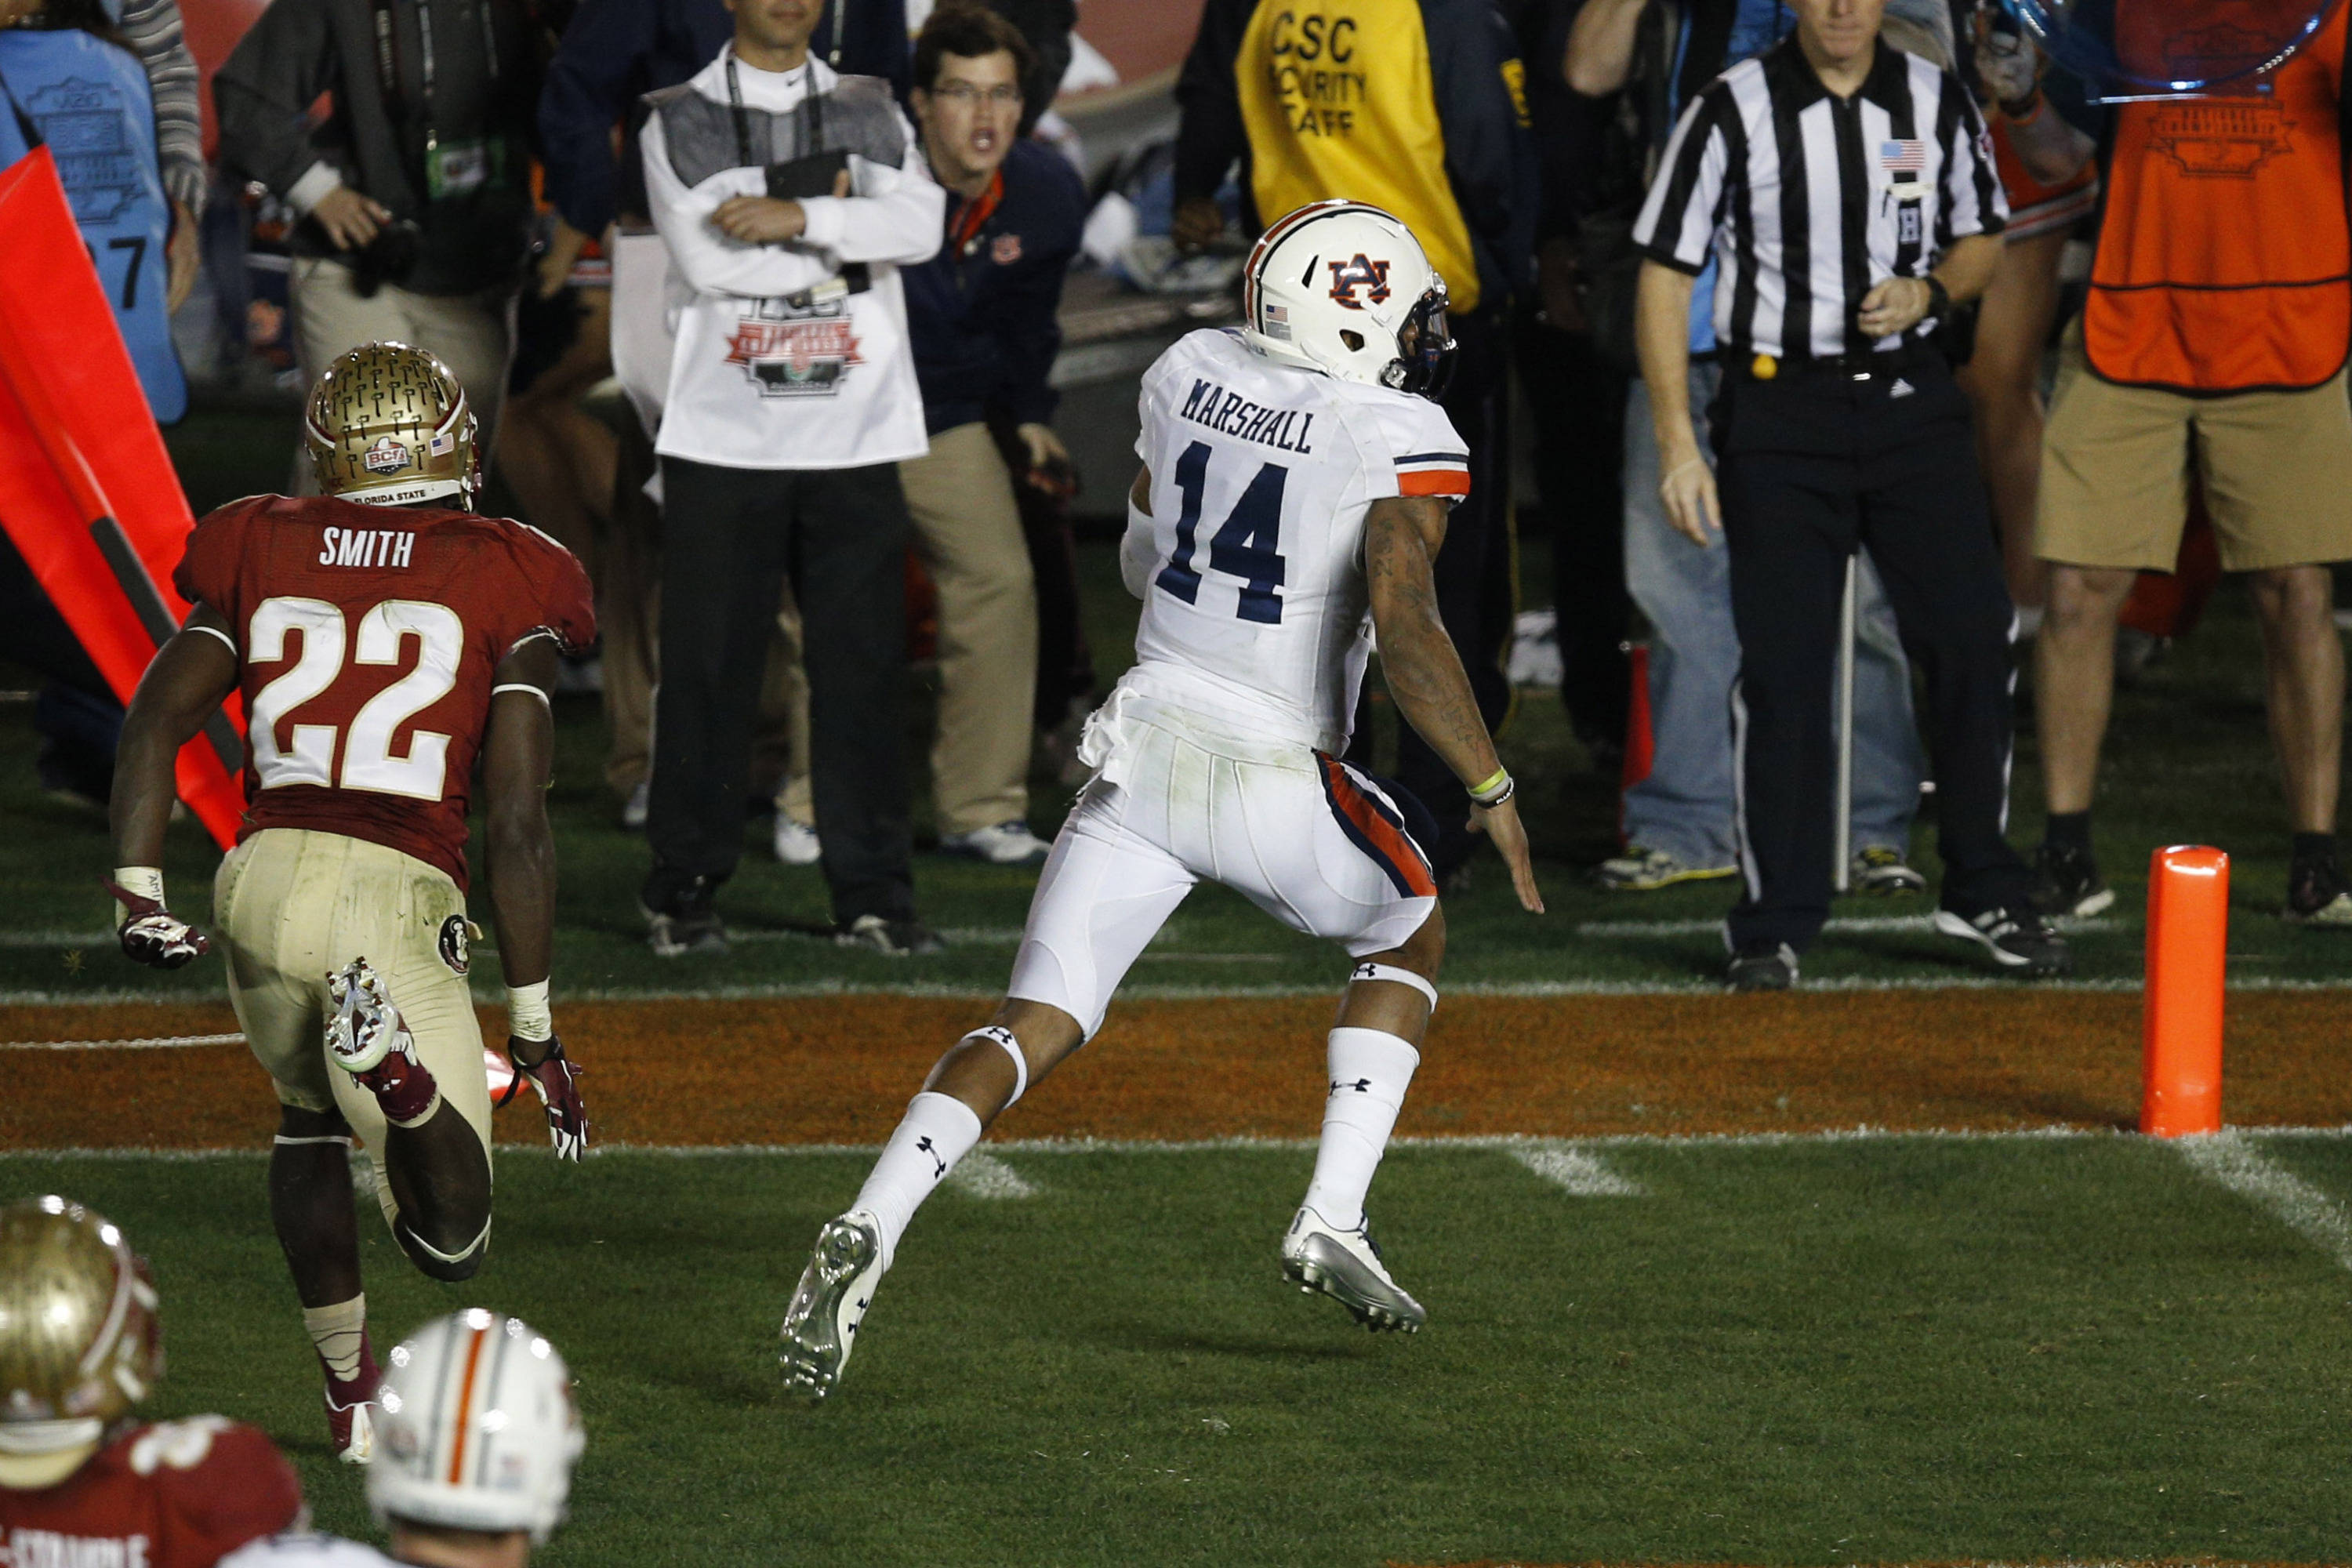 Jan 6, 2014; Pasadena, CA, USA; Auburn Tigers quarterback Nick Marshall (14) scores a touchdown past Florida State Seminoles linebacker Telvin Smith (22) during the first half of the 2014 BCS National Championship game at the Rose Bowl.  Mandatory Credit: Kelvin Kuo-USA TODAY Sports